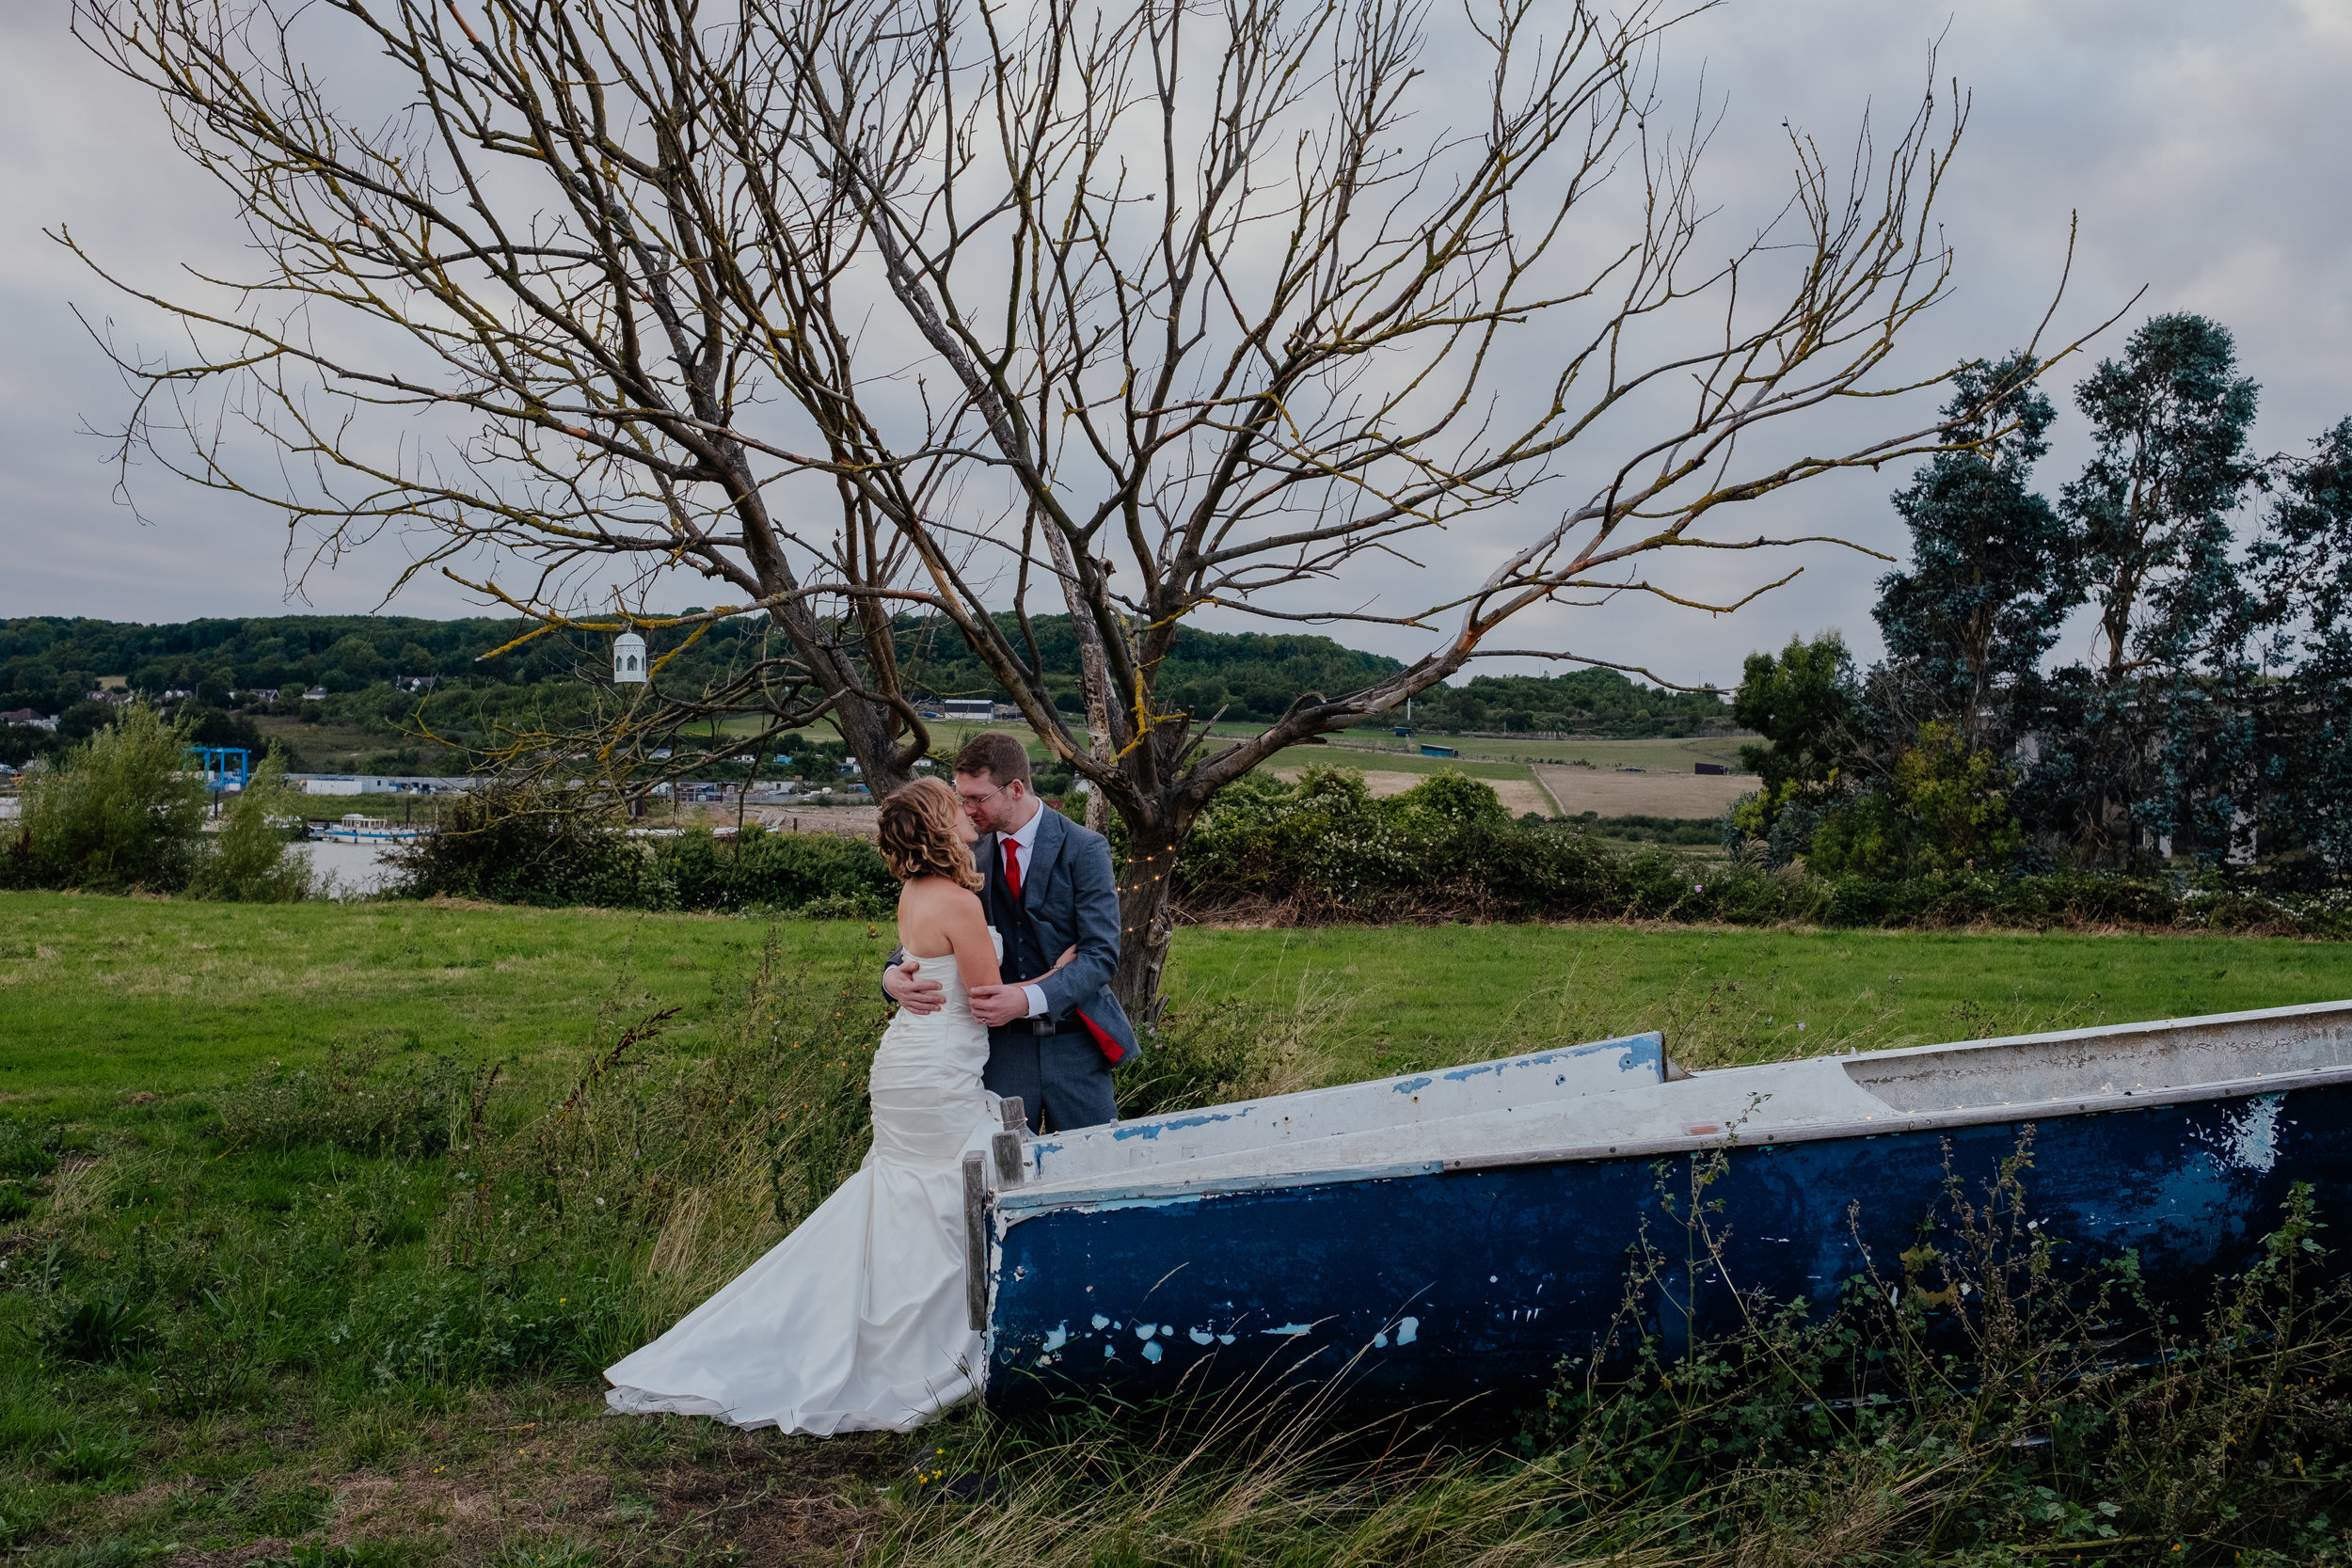 Bride and groom stood next to boat